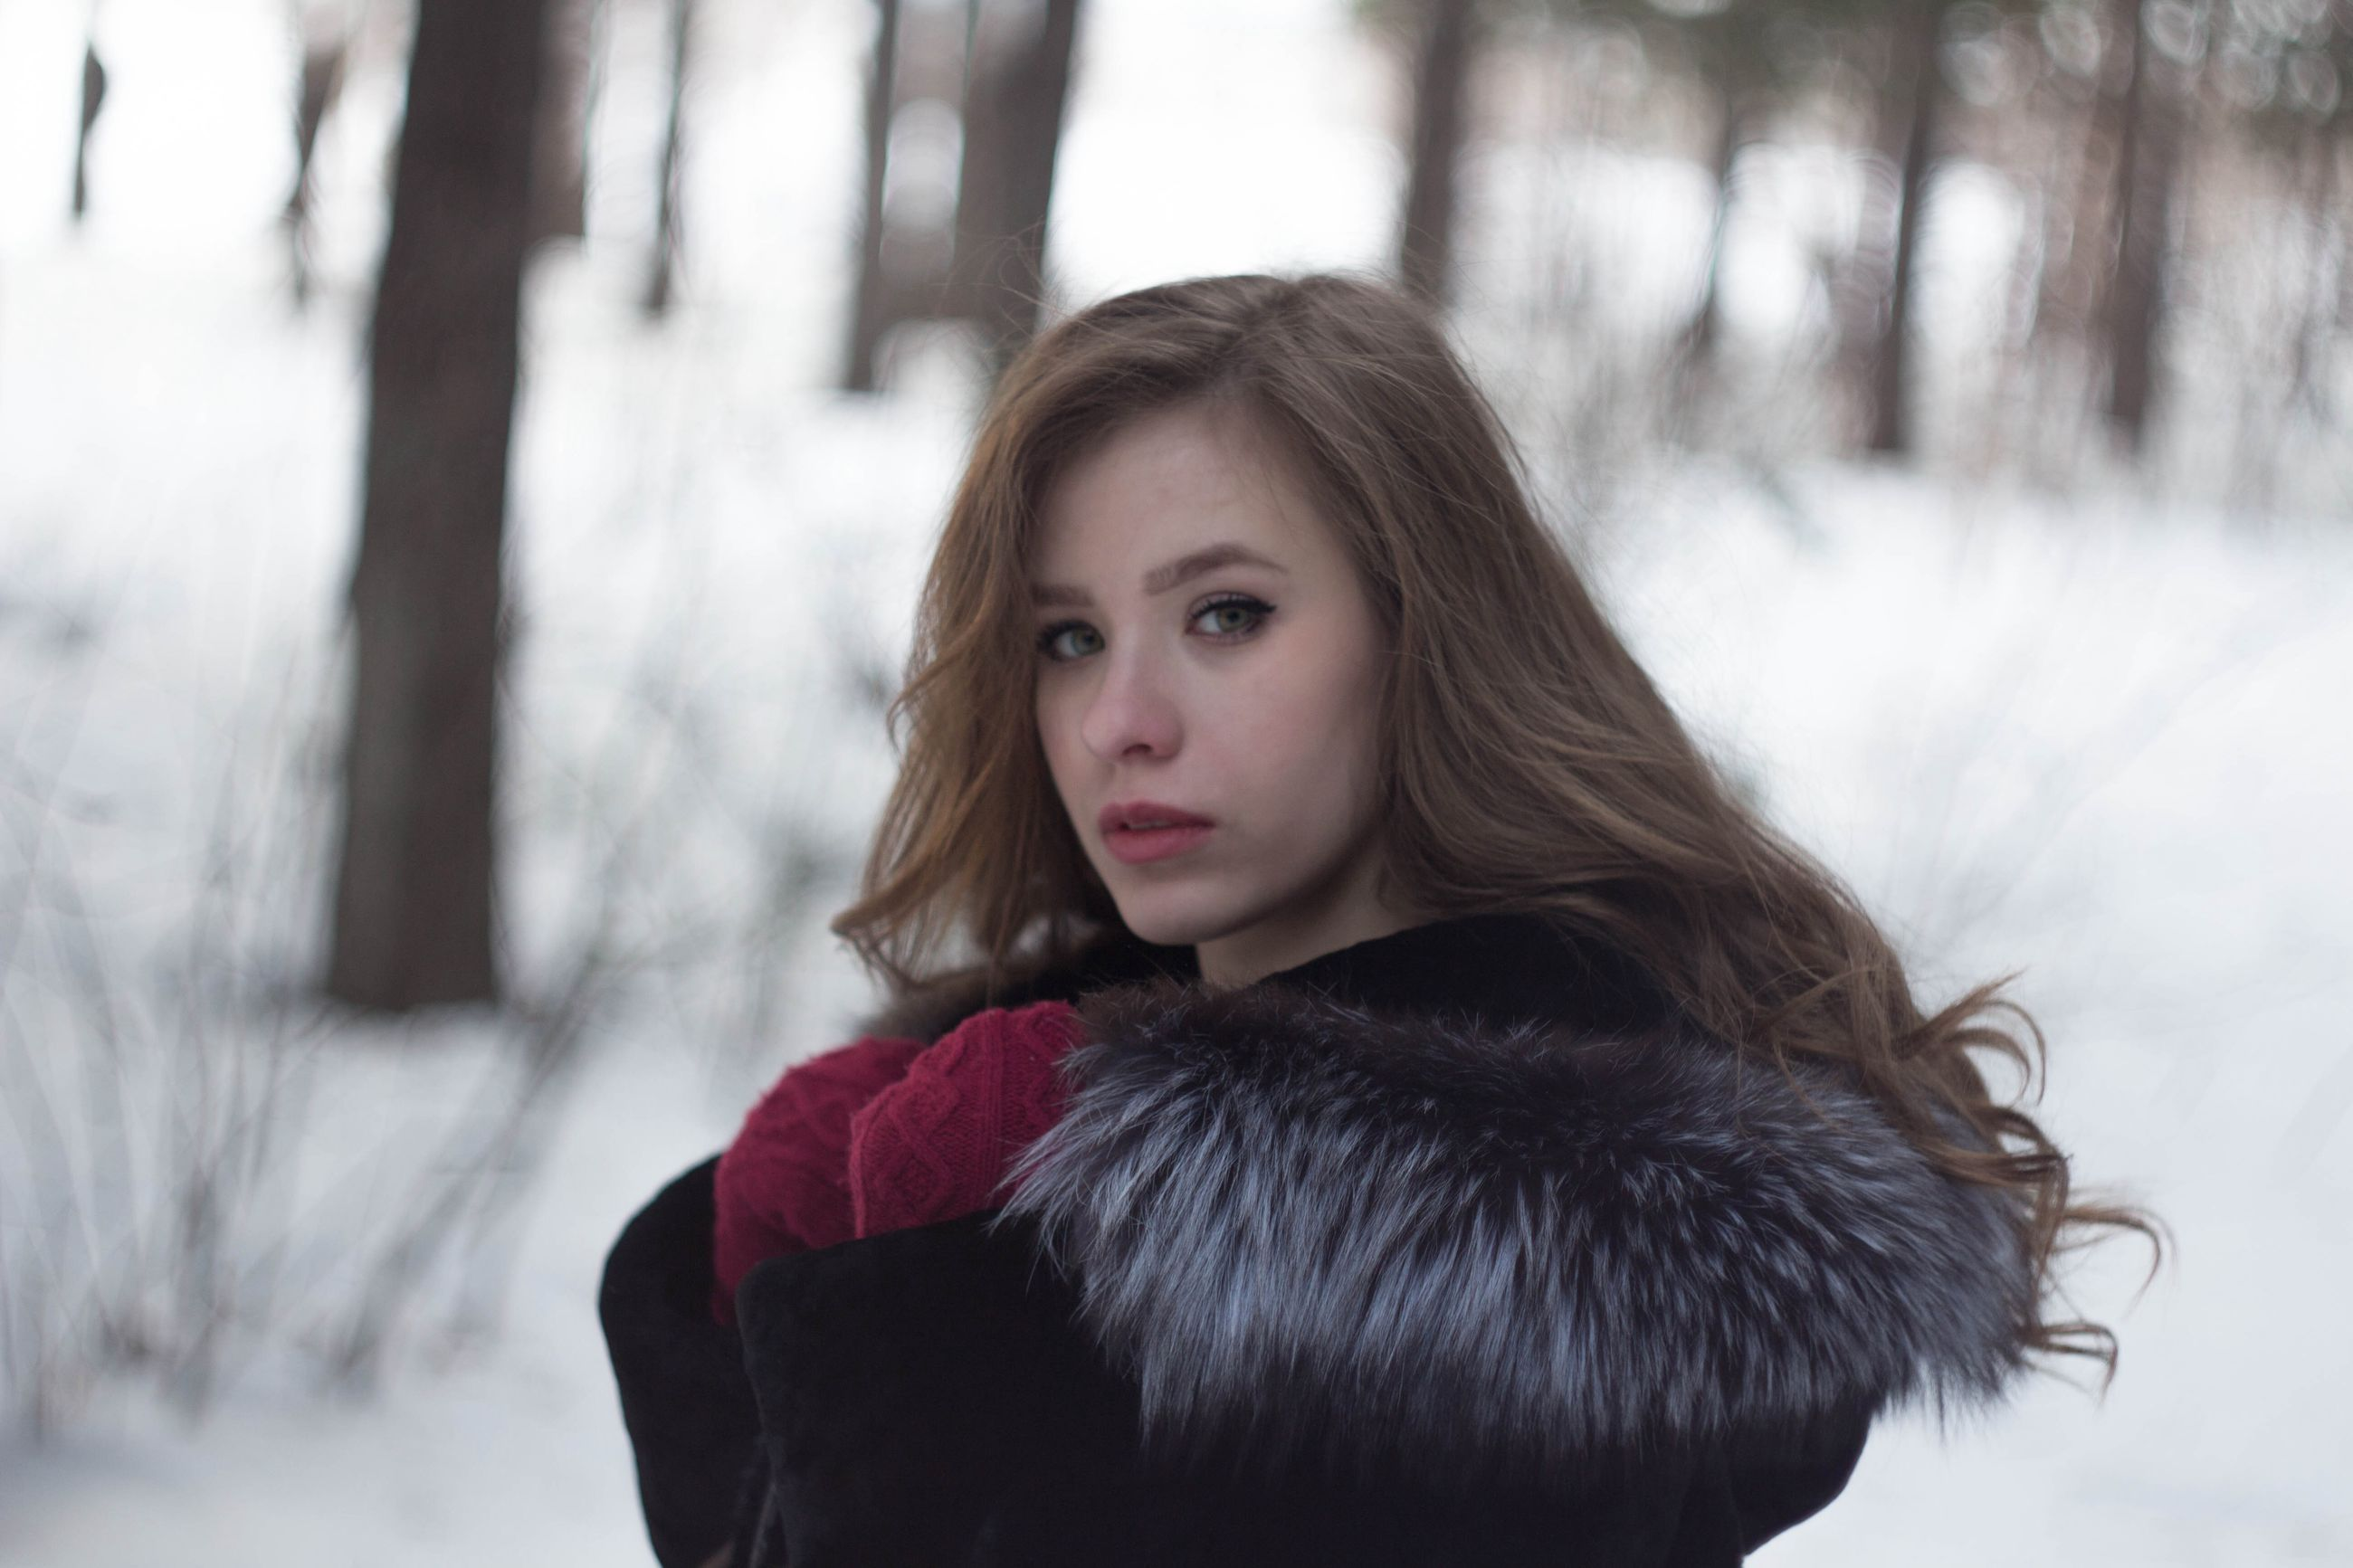 focus on foreground, lifestyles, portrait, long hair, looking at camera, person, front view, headshot, leisure activity, young women, young adult, warm clothing, winter, brown hair, waist up, cold temperature, smiling, casual clothing